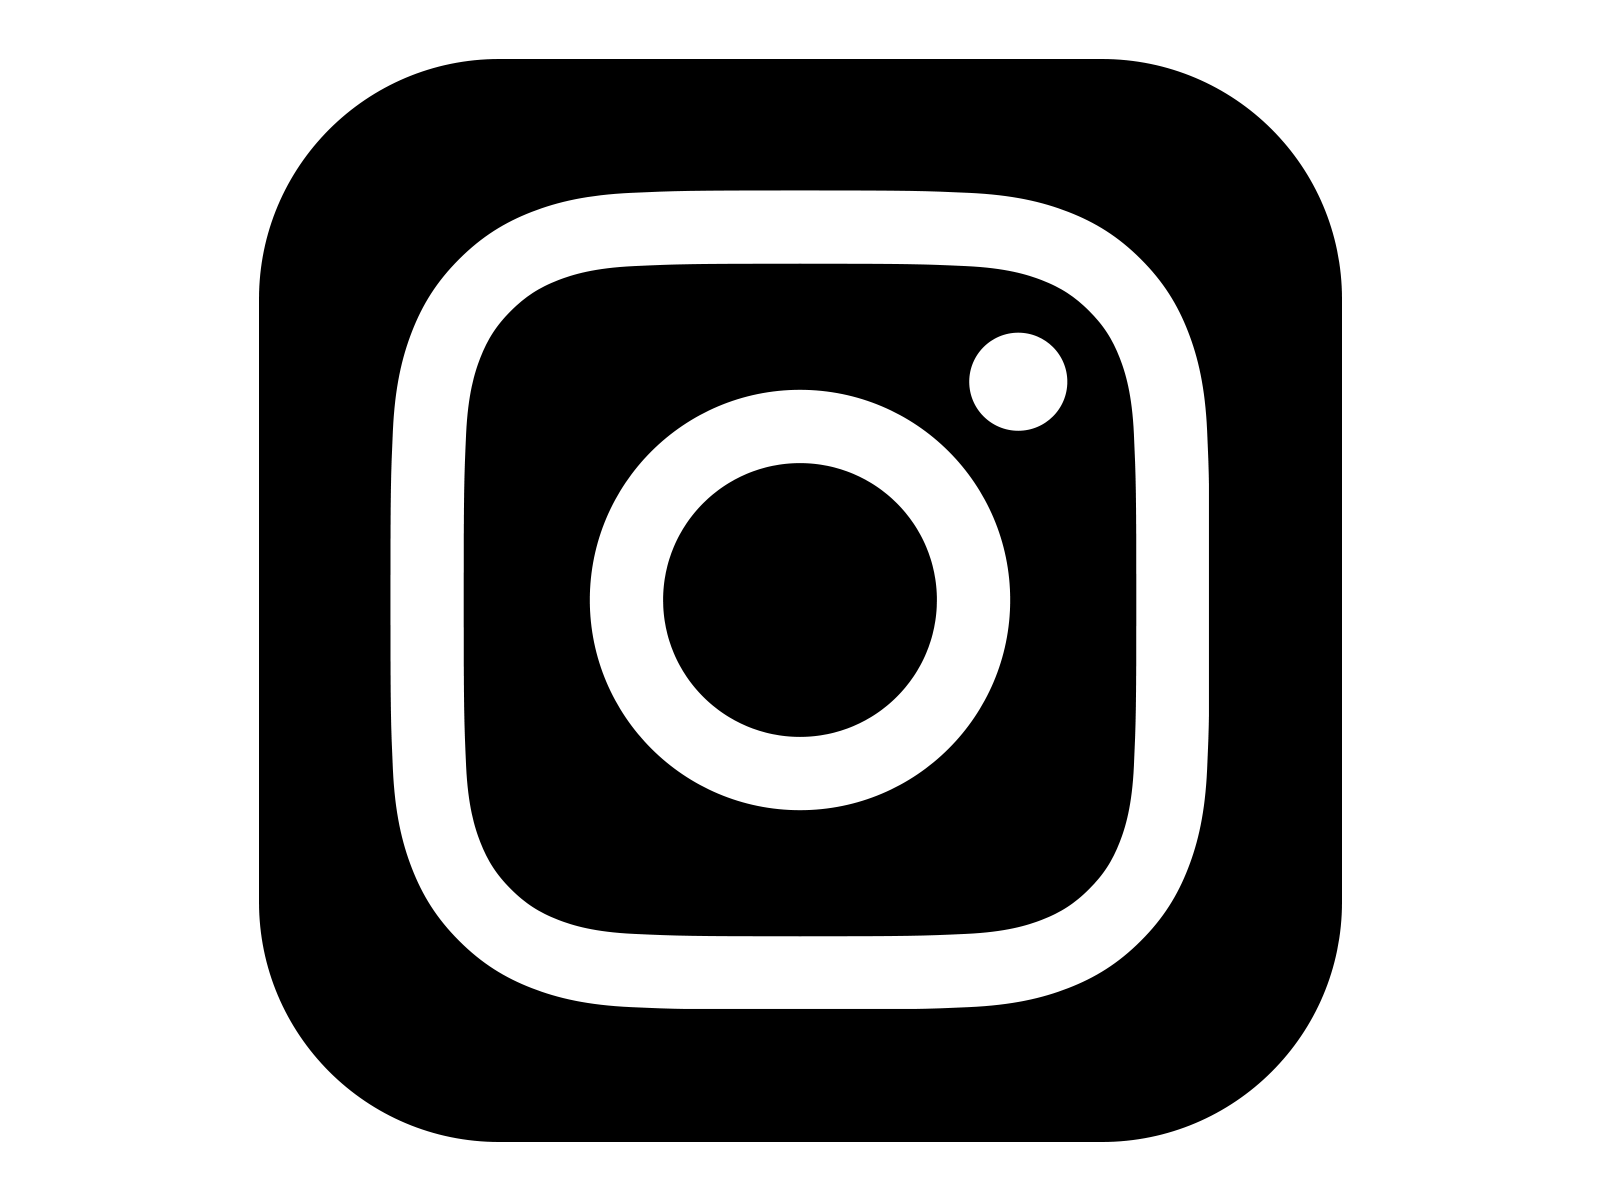 Black and white instagram logo png. Clipart group bbcpersian collections